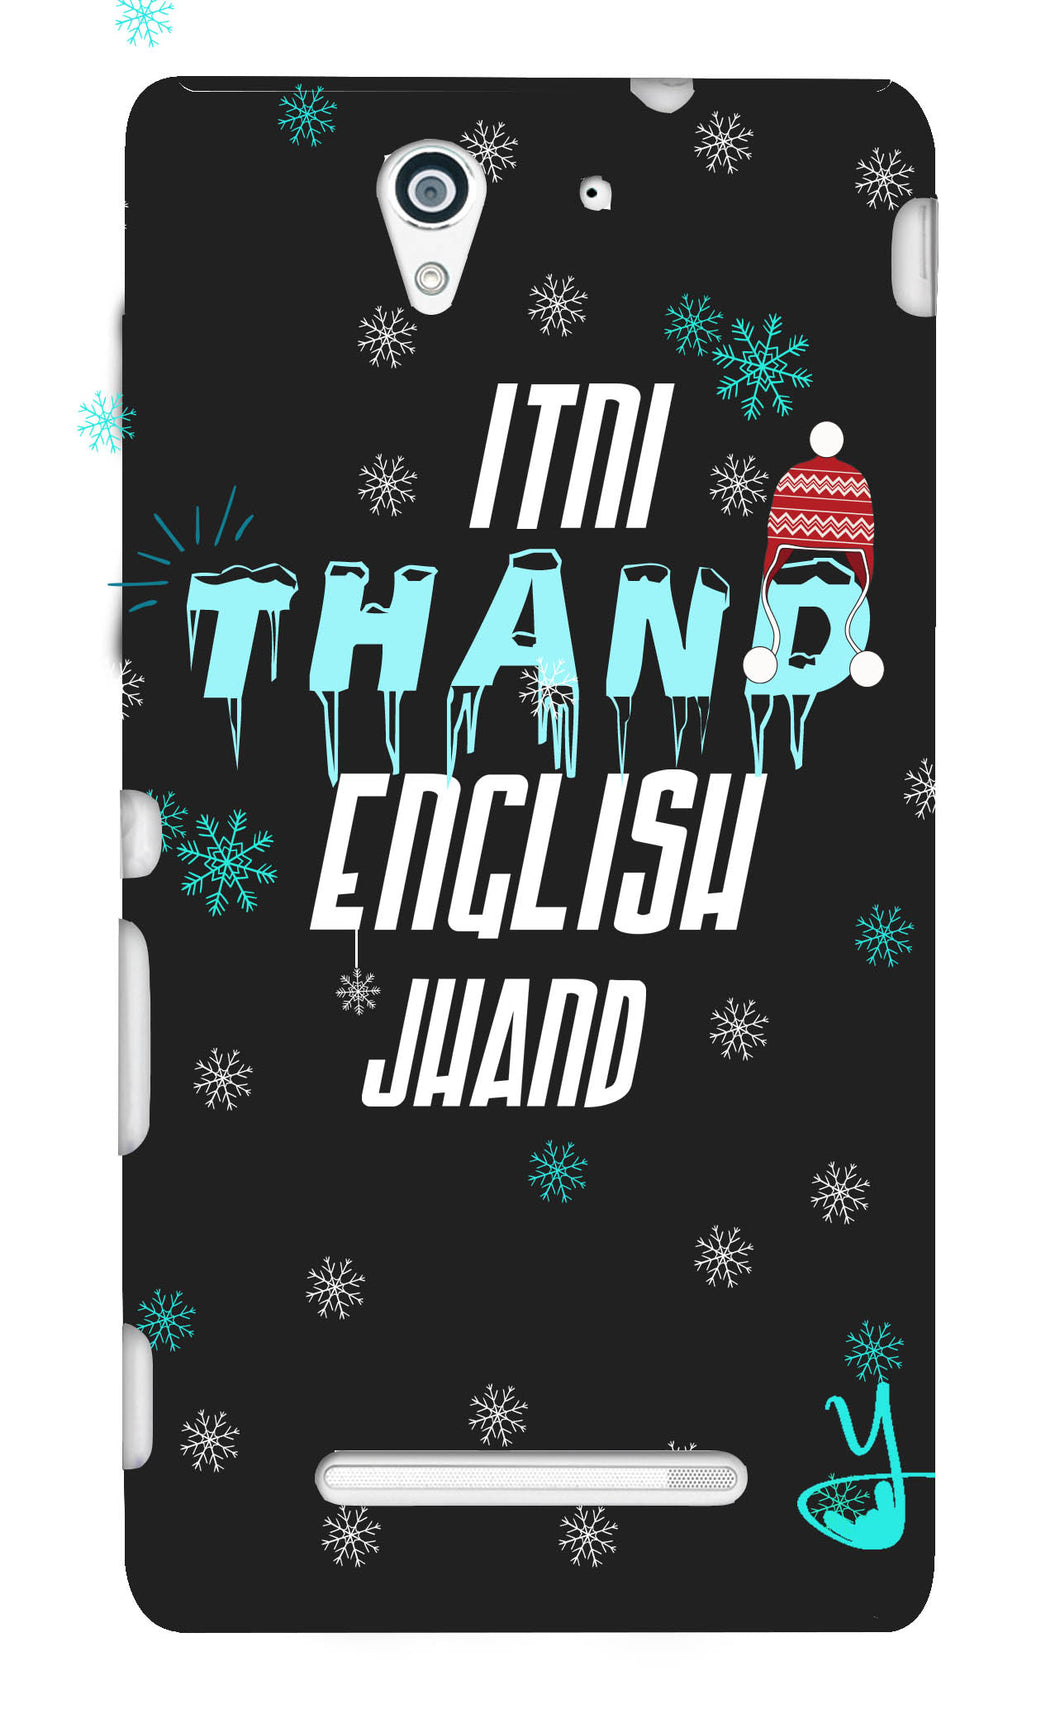 Itni Thand edition for Sony Xperia C3